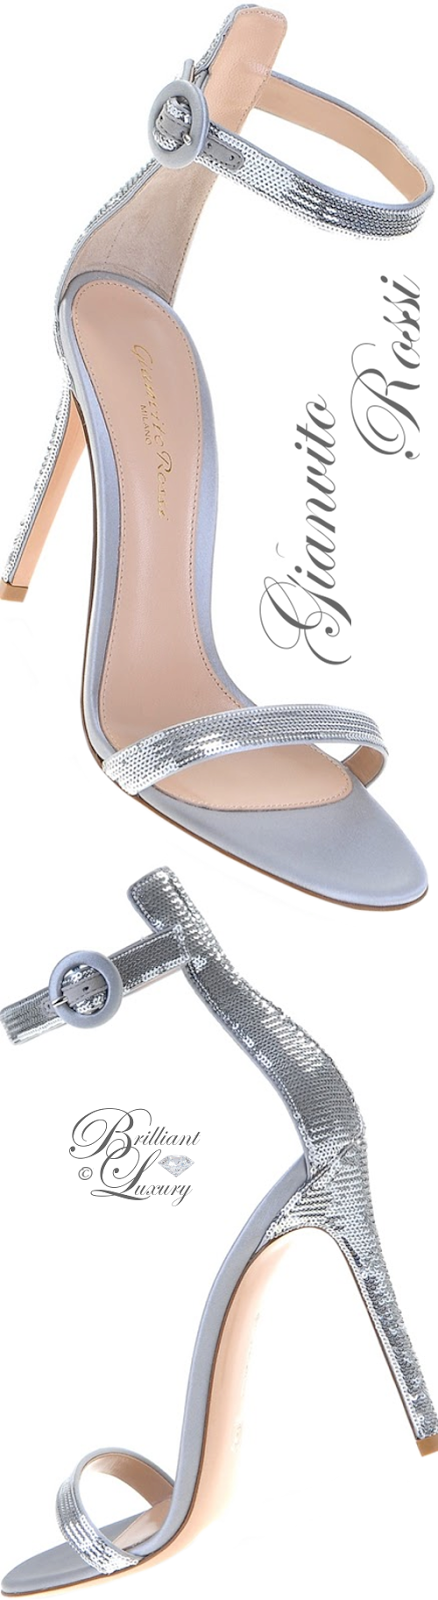 Brilliant Luxury ♦ Gianvito Rossi Palladium Sandals